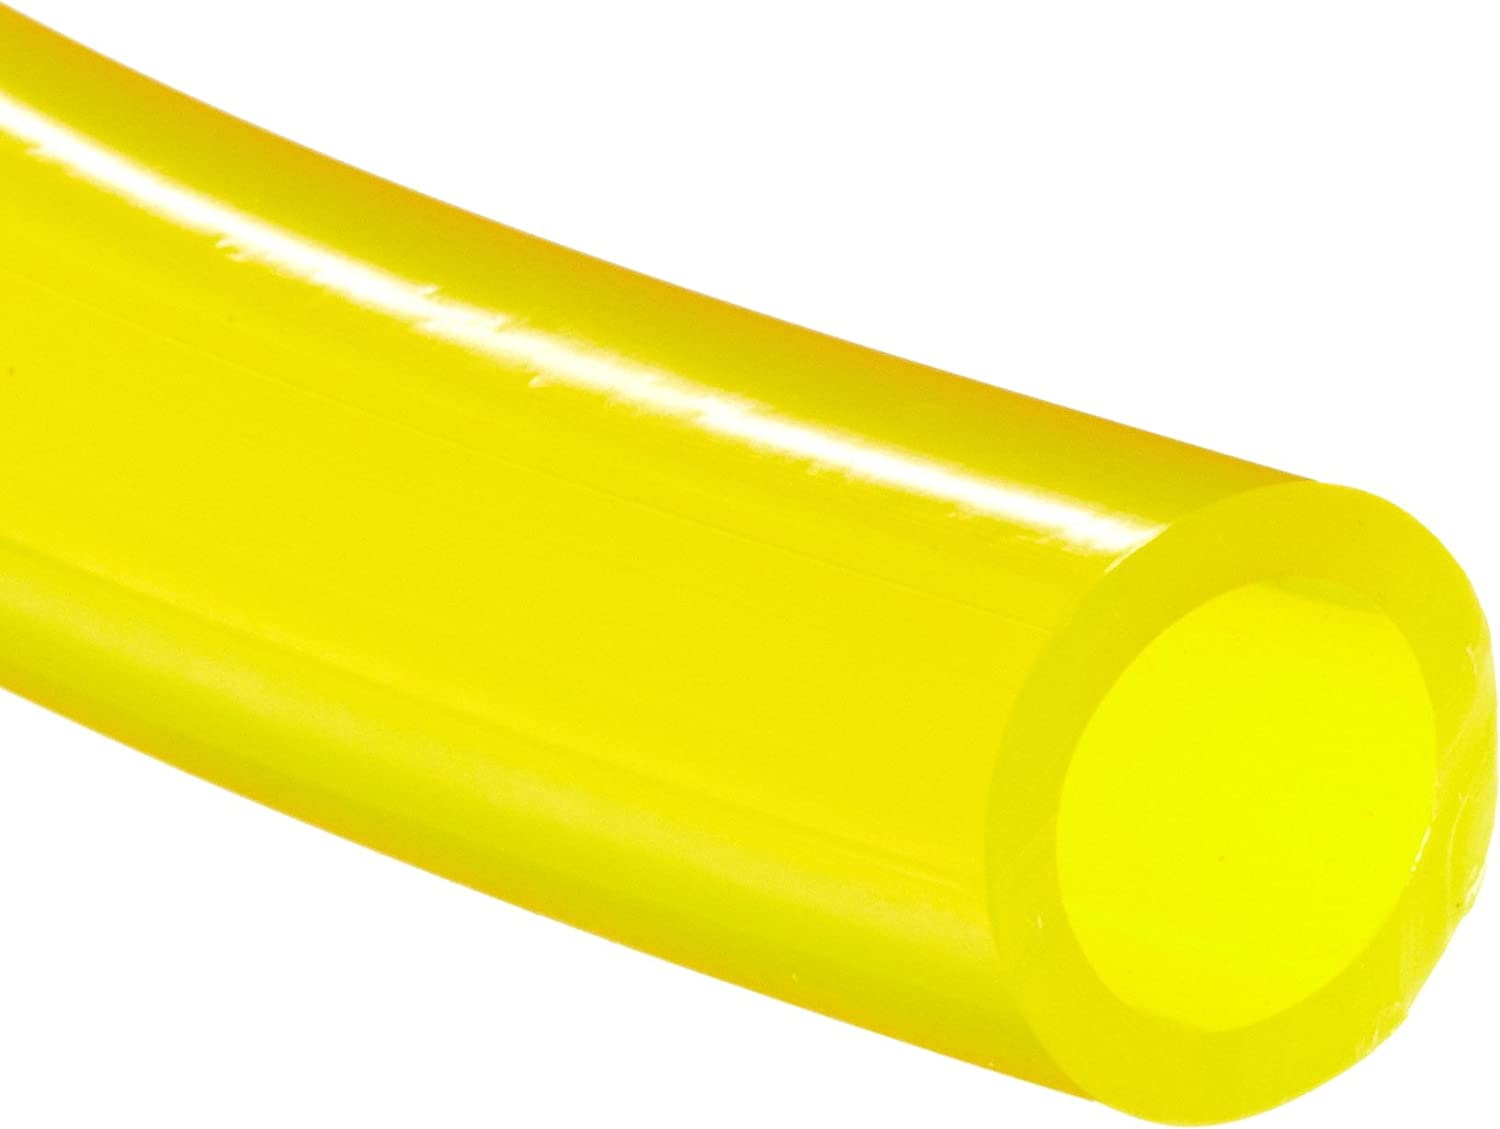 Tygon F-4040-A PVC Fuel And Lubricant Tubing, 1/8 ID, 1/4 OD, 1/16 Wall, 50 Length, Yellow